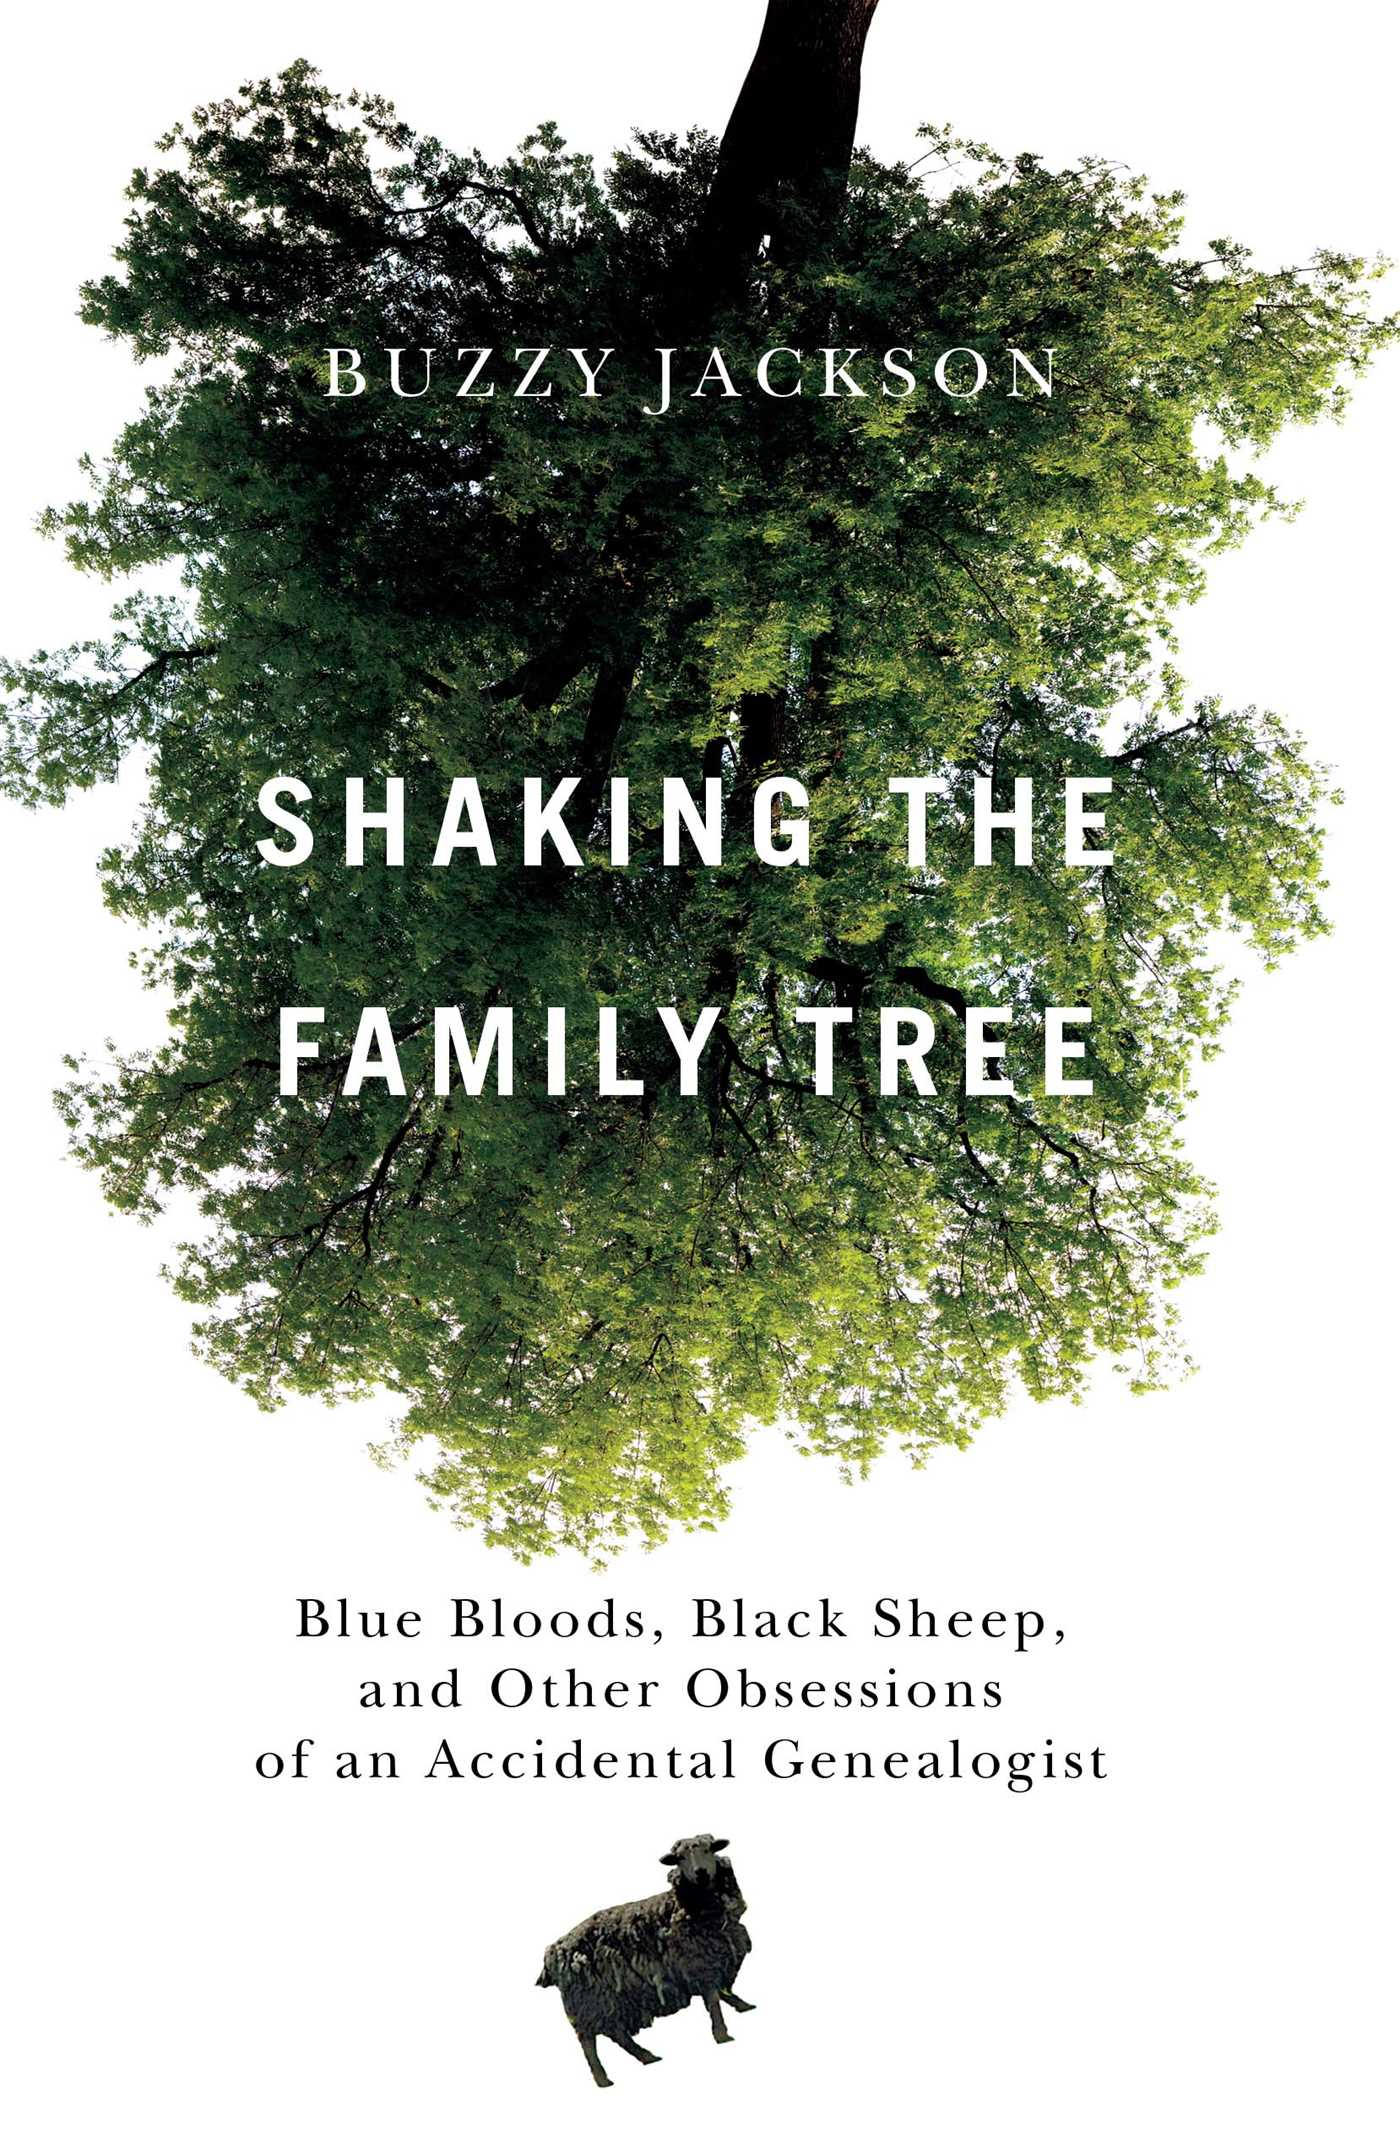 Shaking the family tree 9781439112991 hr